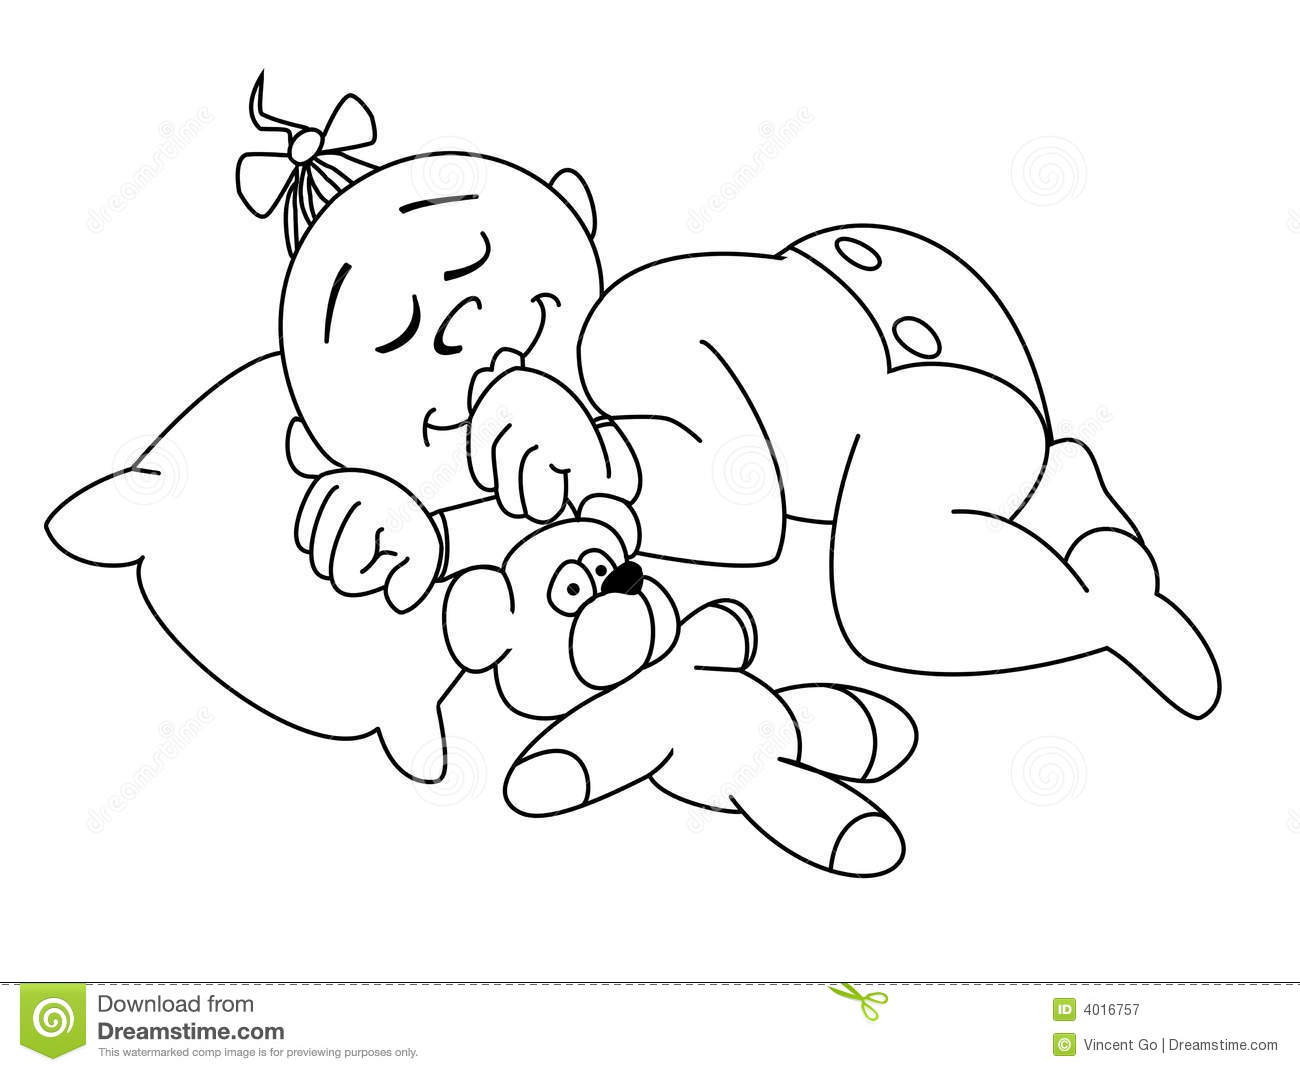 Child sleeping clipart black and white 3 » Clipart Station